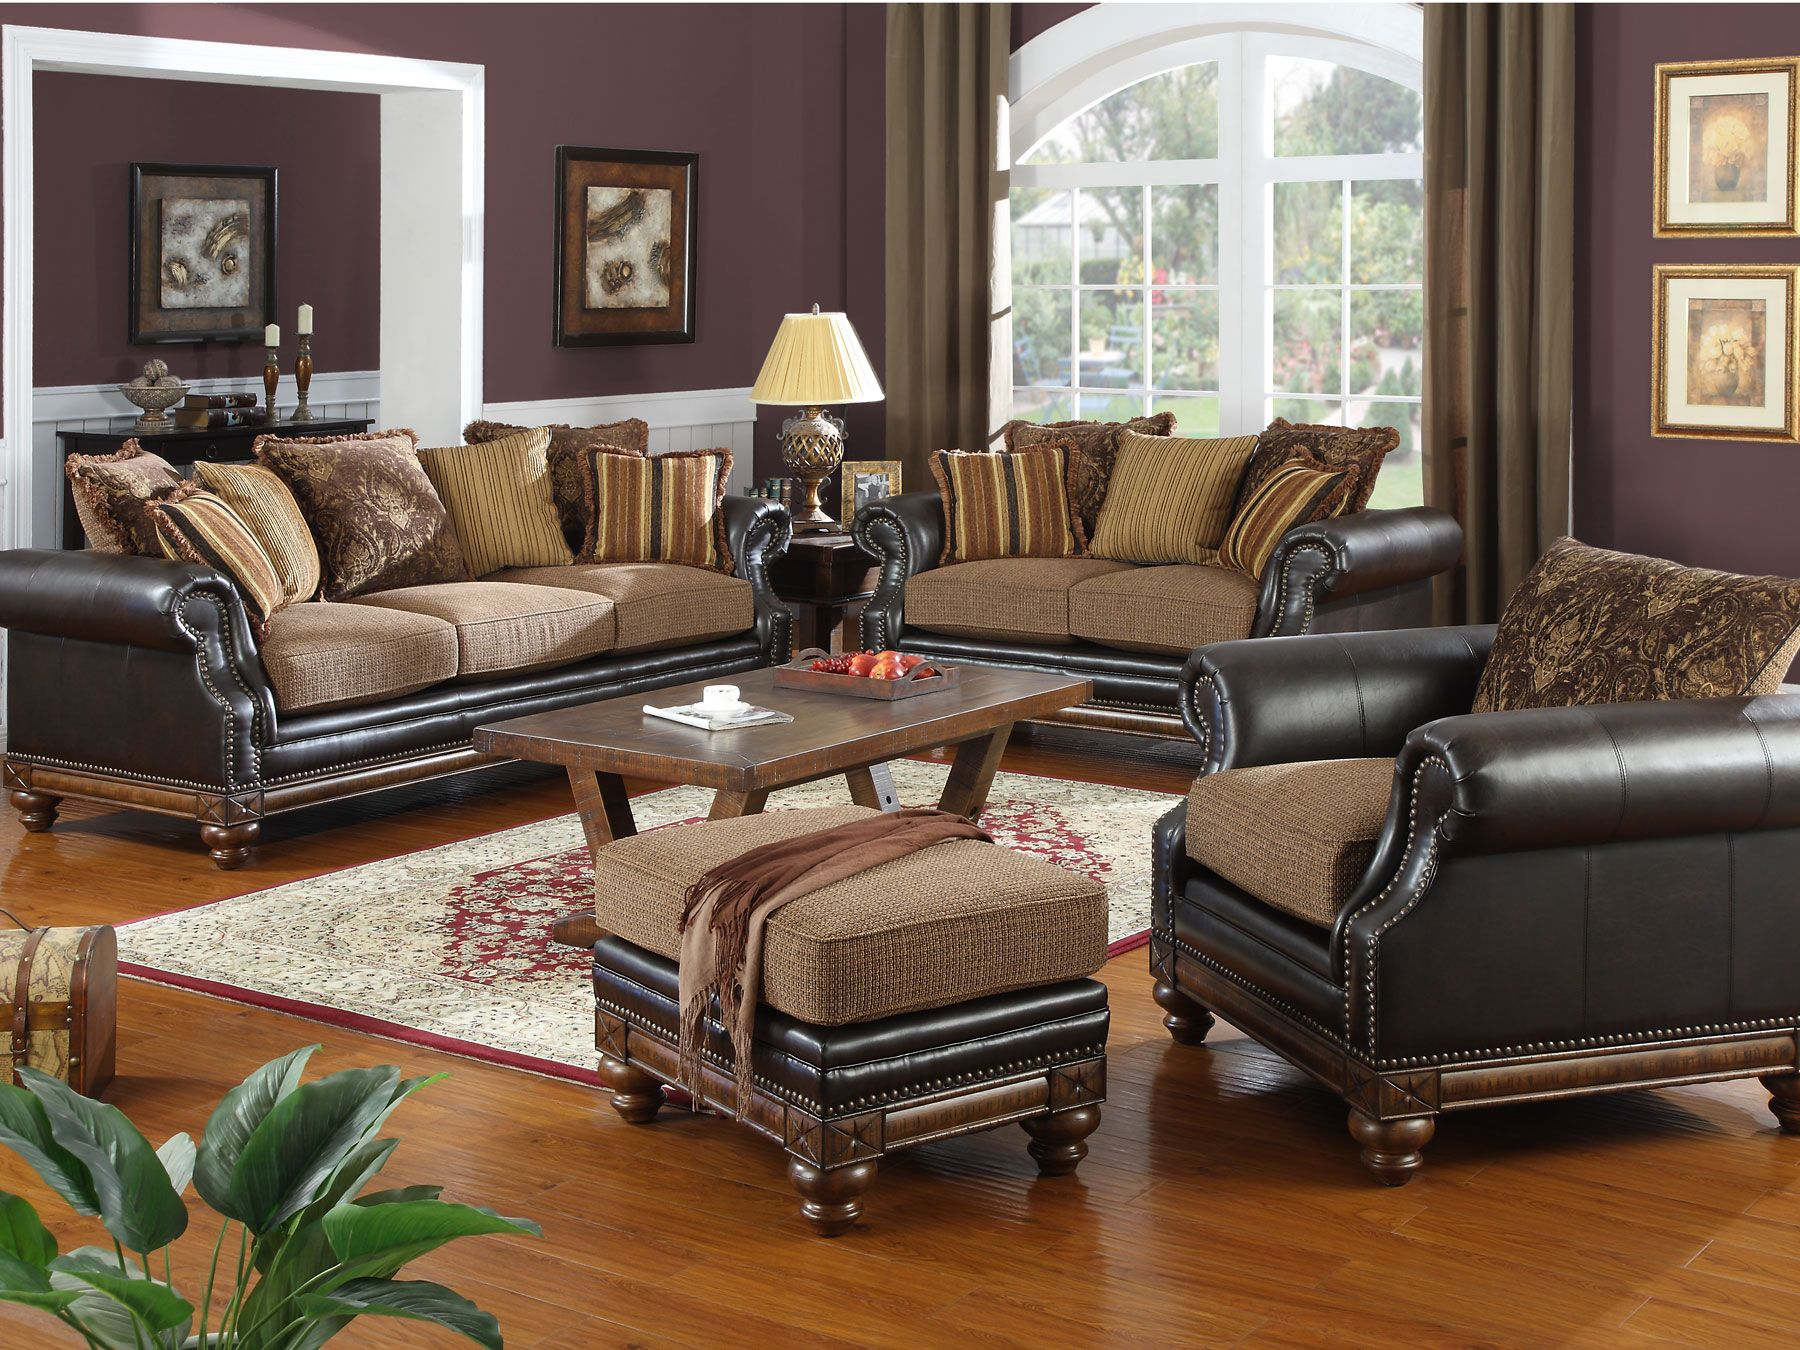 Marina On With Images Leather Living Room Furniture Living